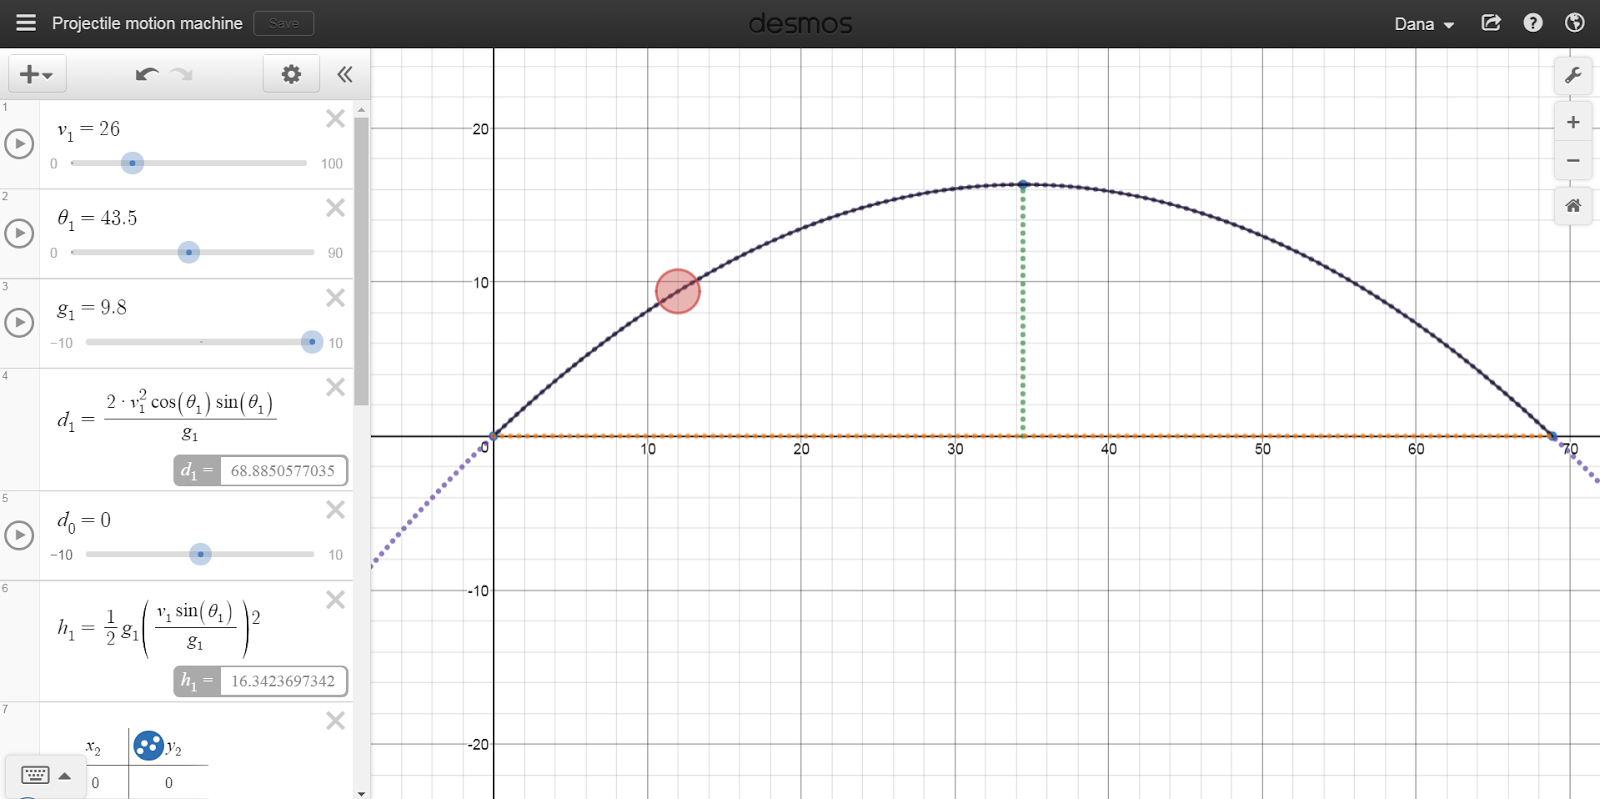 Projectile motion demonstrator in Desmos